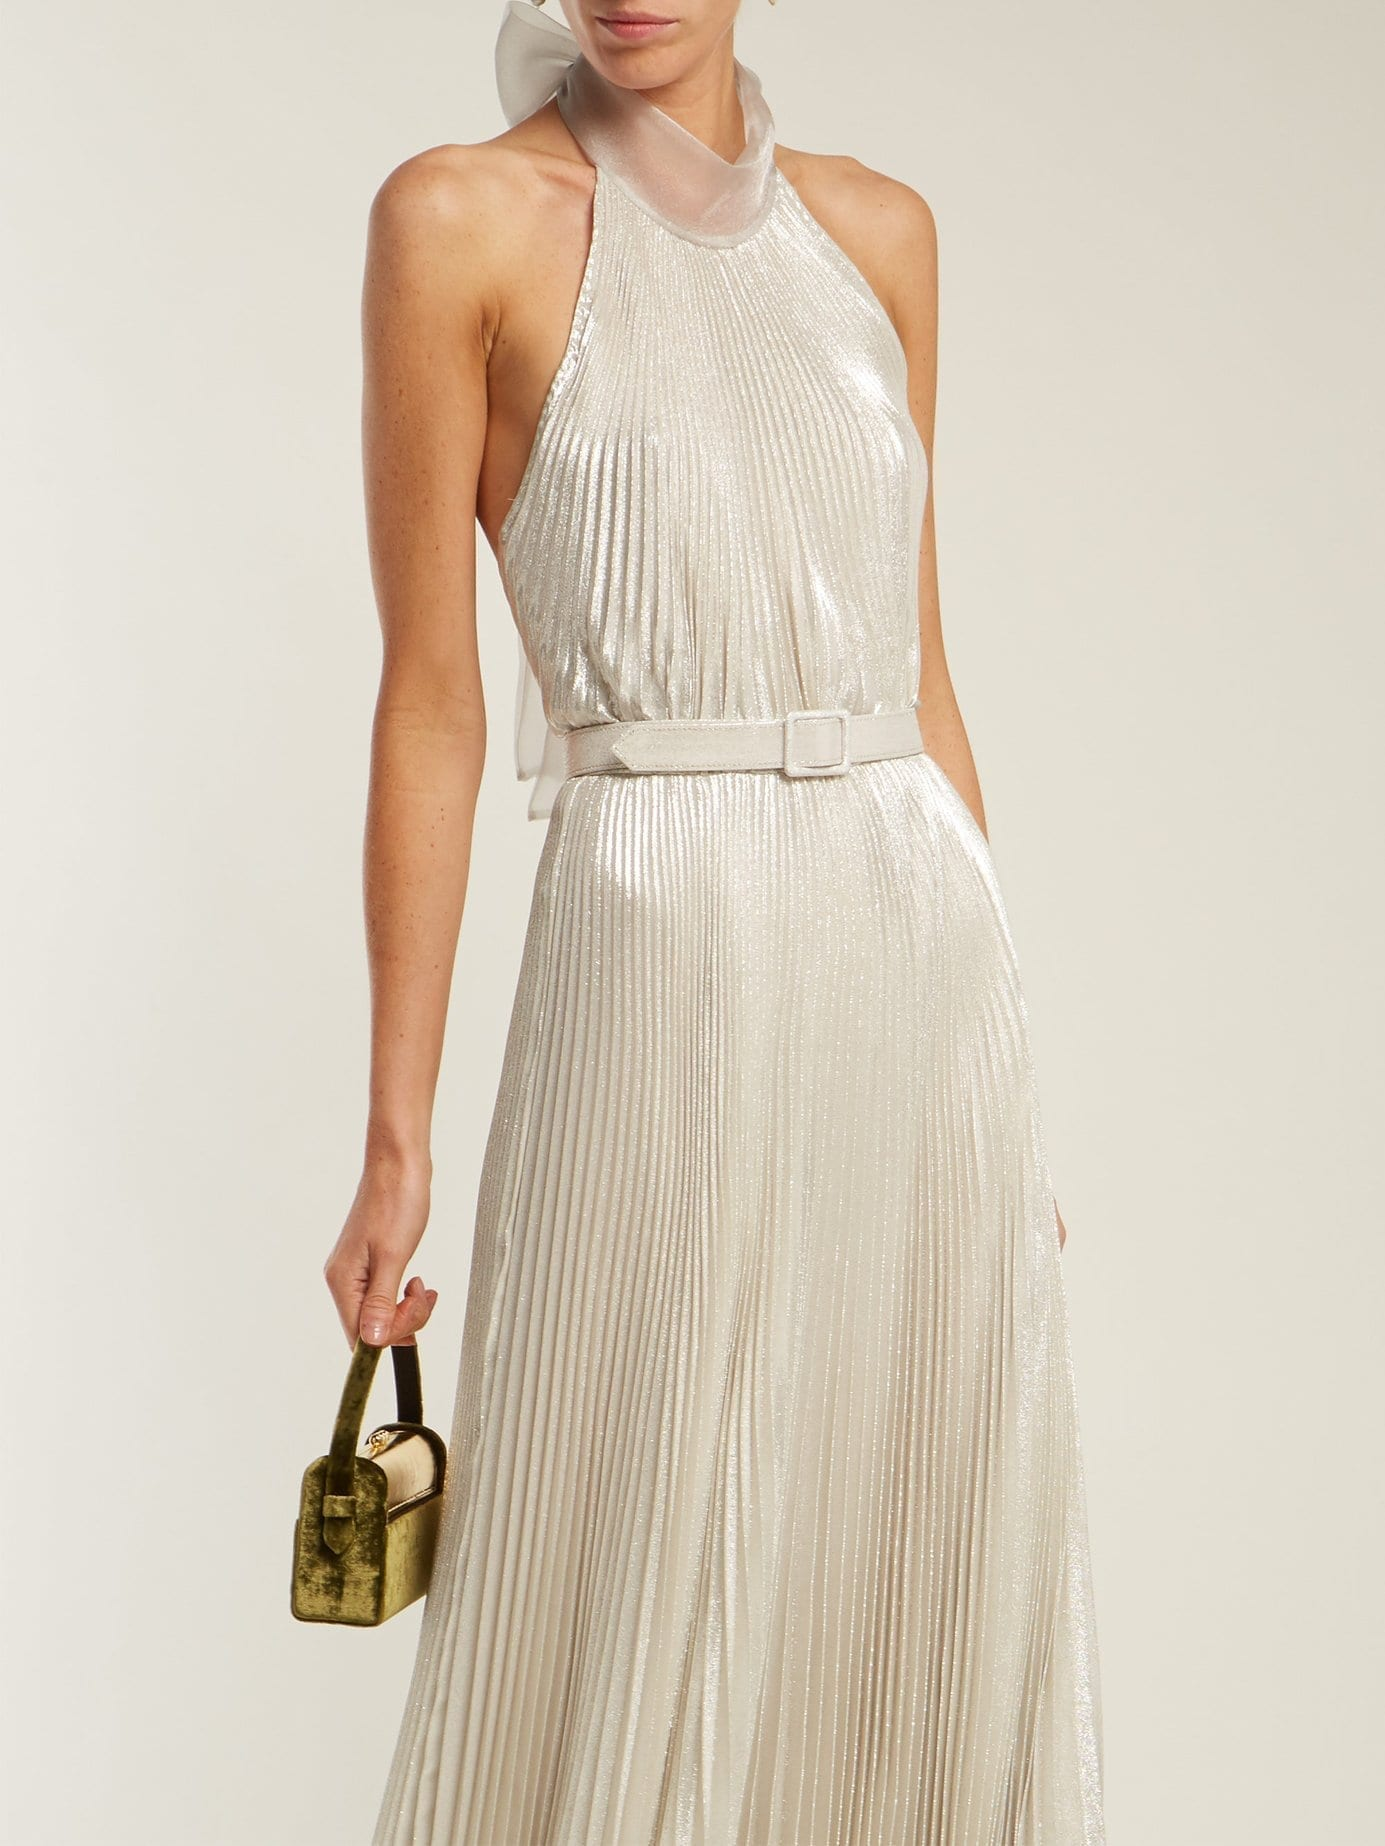 LUISA BECCARIA Pleated Halterneck Silver Gown - We Select Dresses